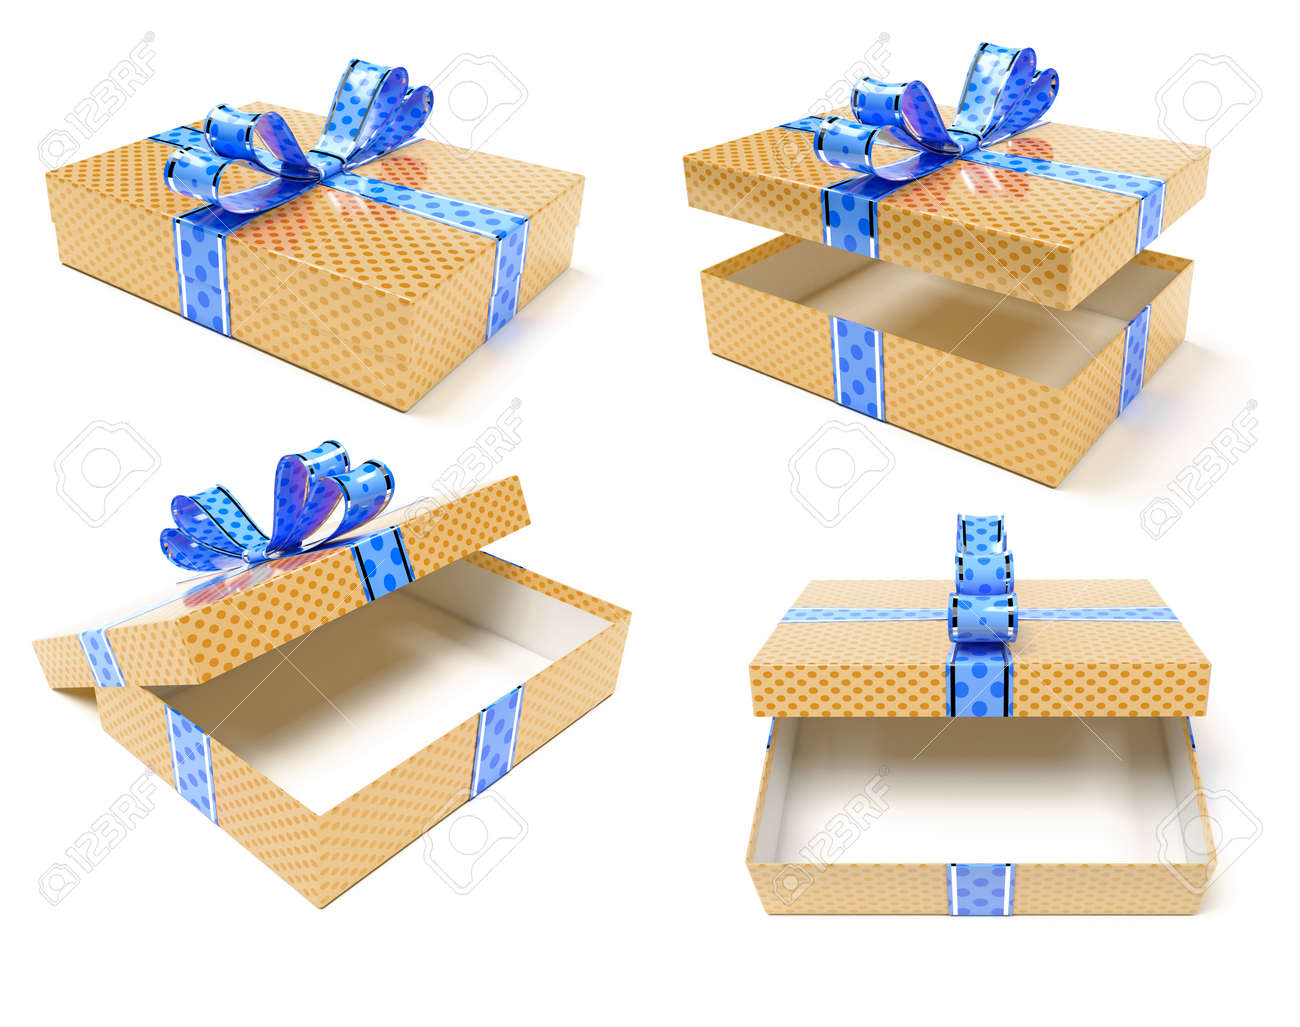 Gift boxes. Brown box with blue bow. 3d rendering illustration isolated on white background - 150233113